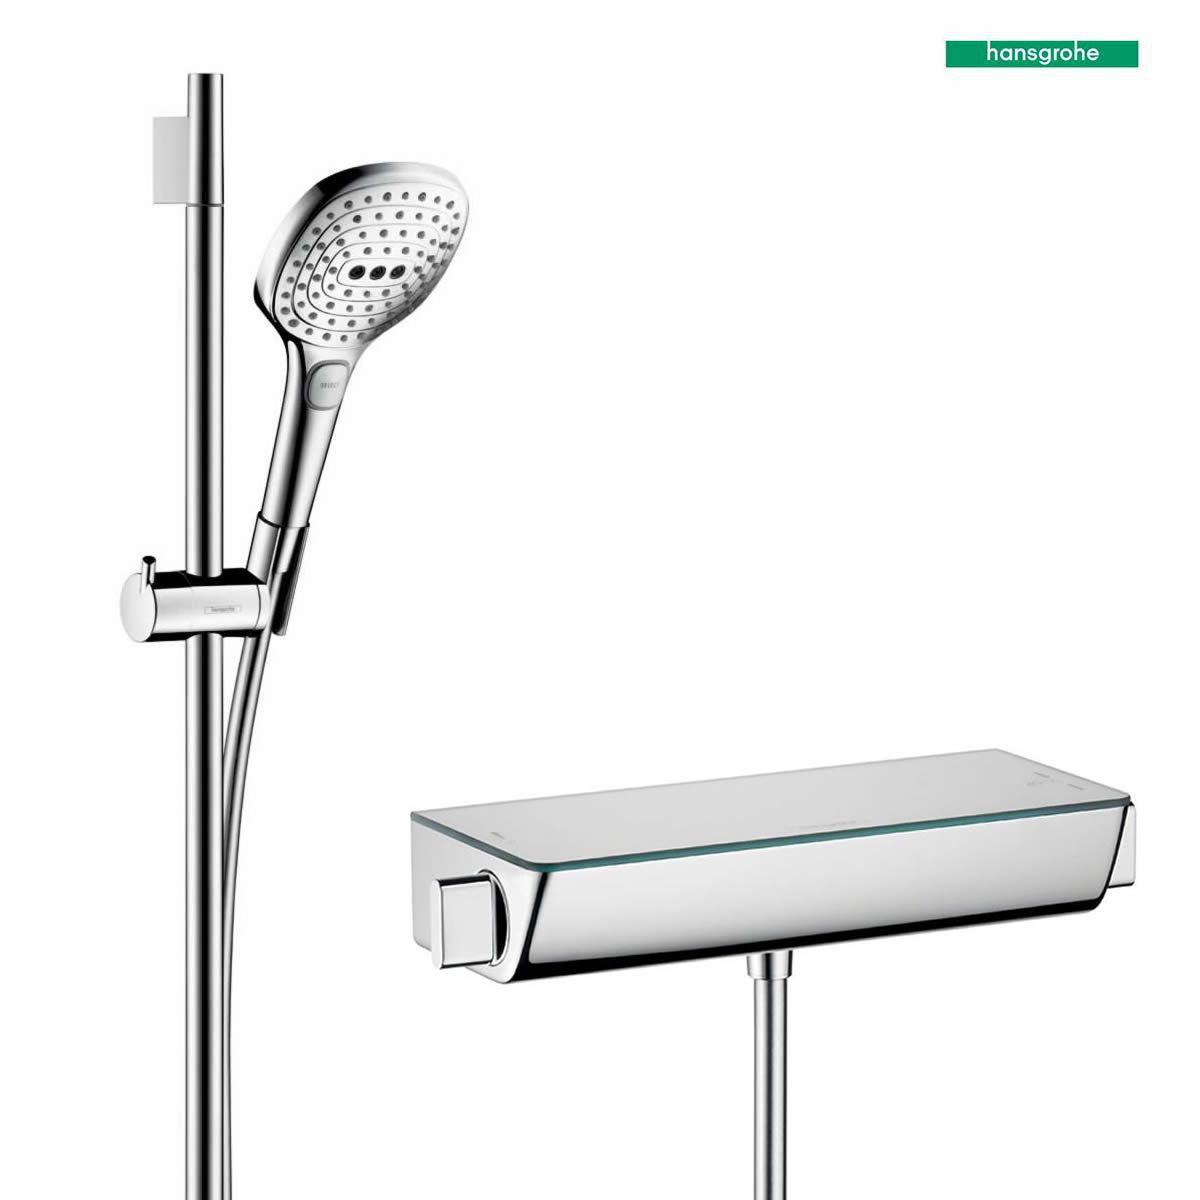 hansgrohe ecostat select with raindance e 120 3jet hand. Black Bedroom Furniture Sets. Home Design Ideas